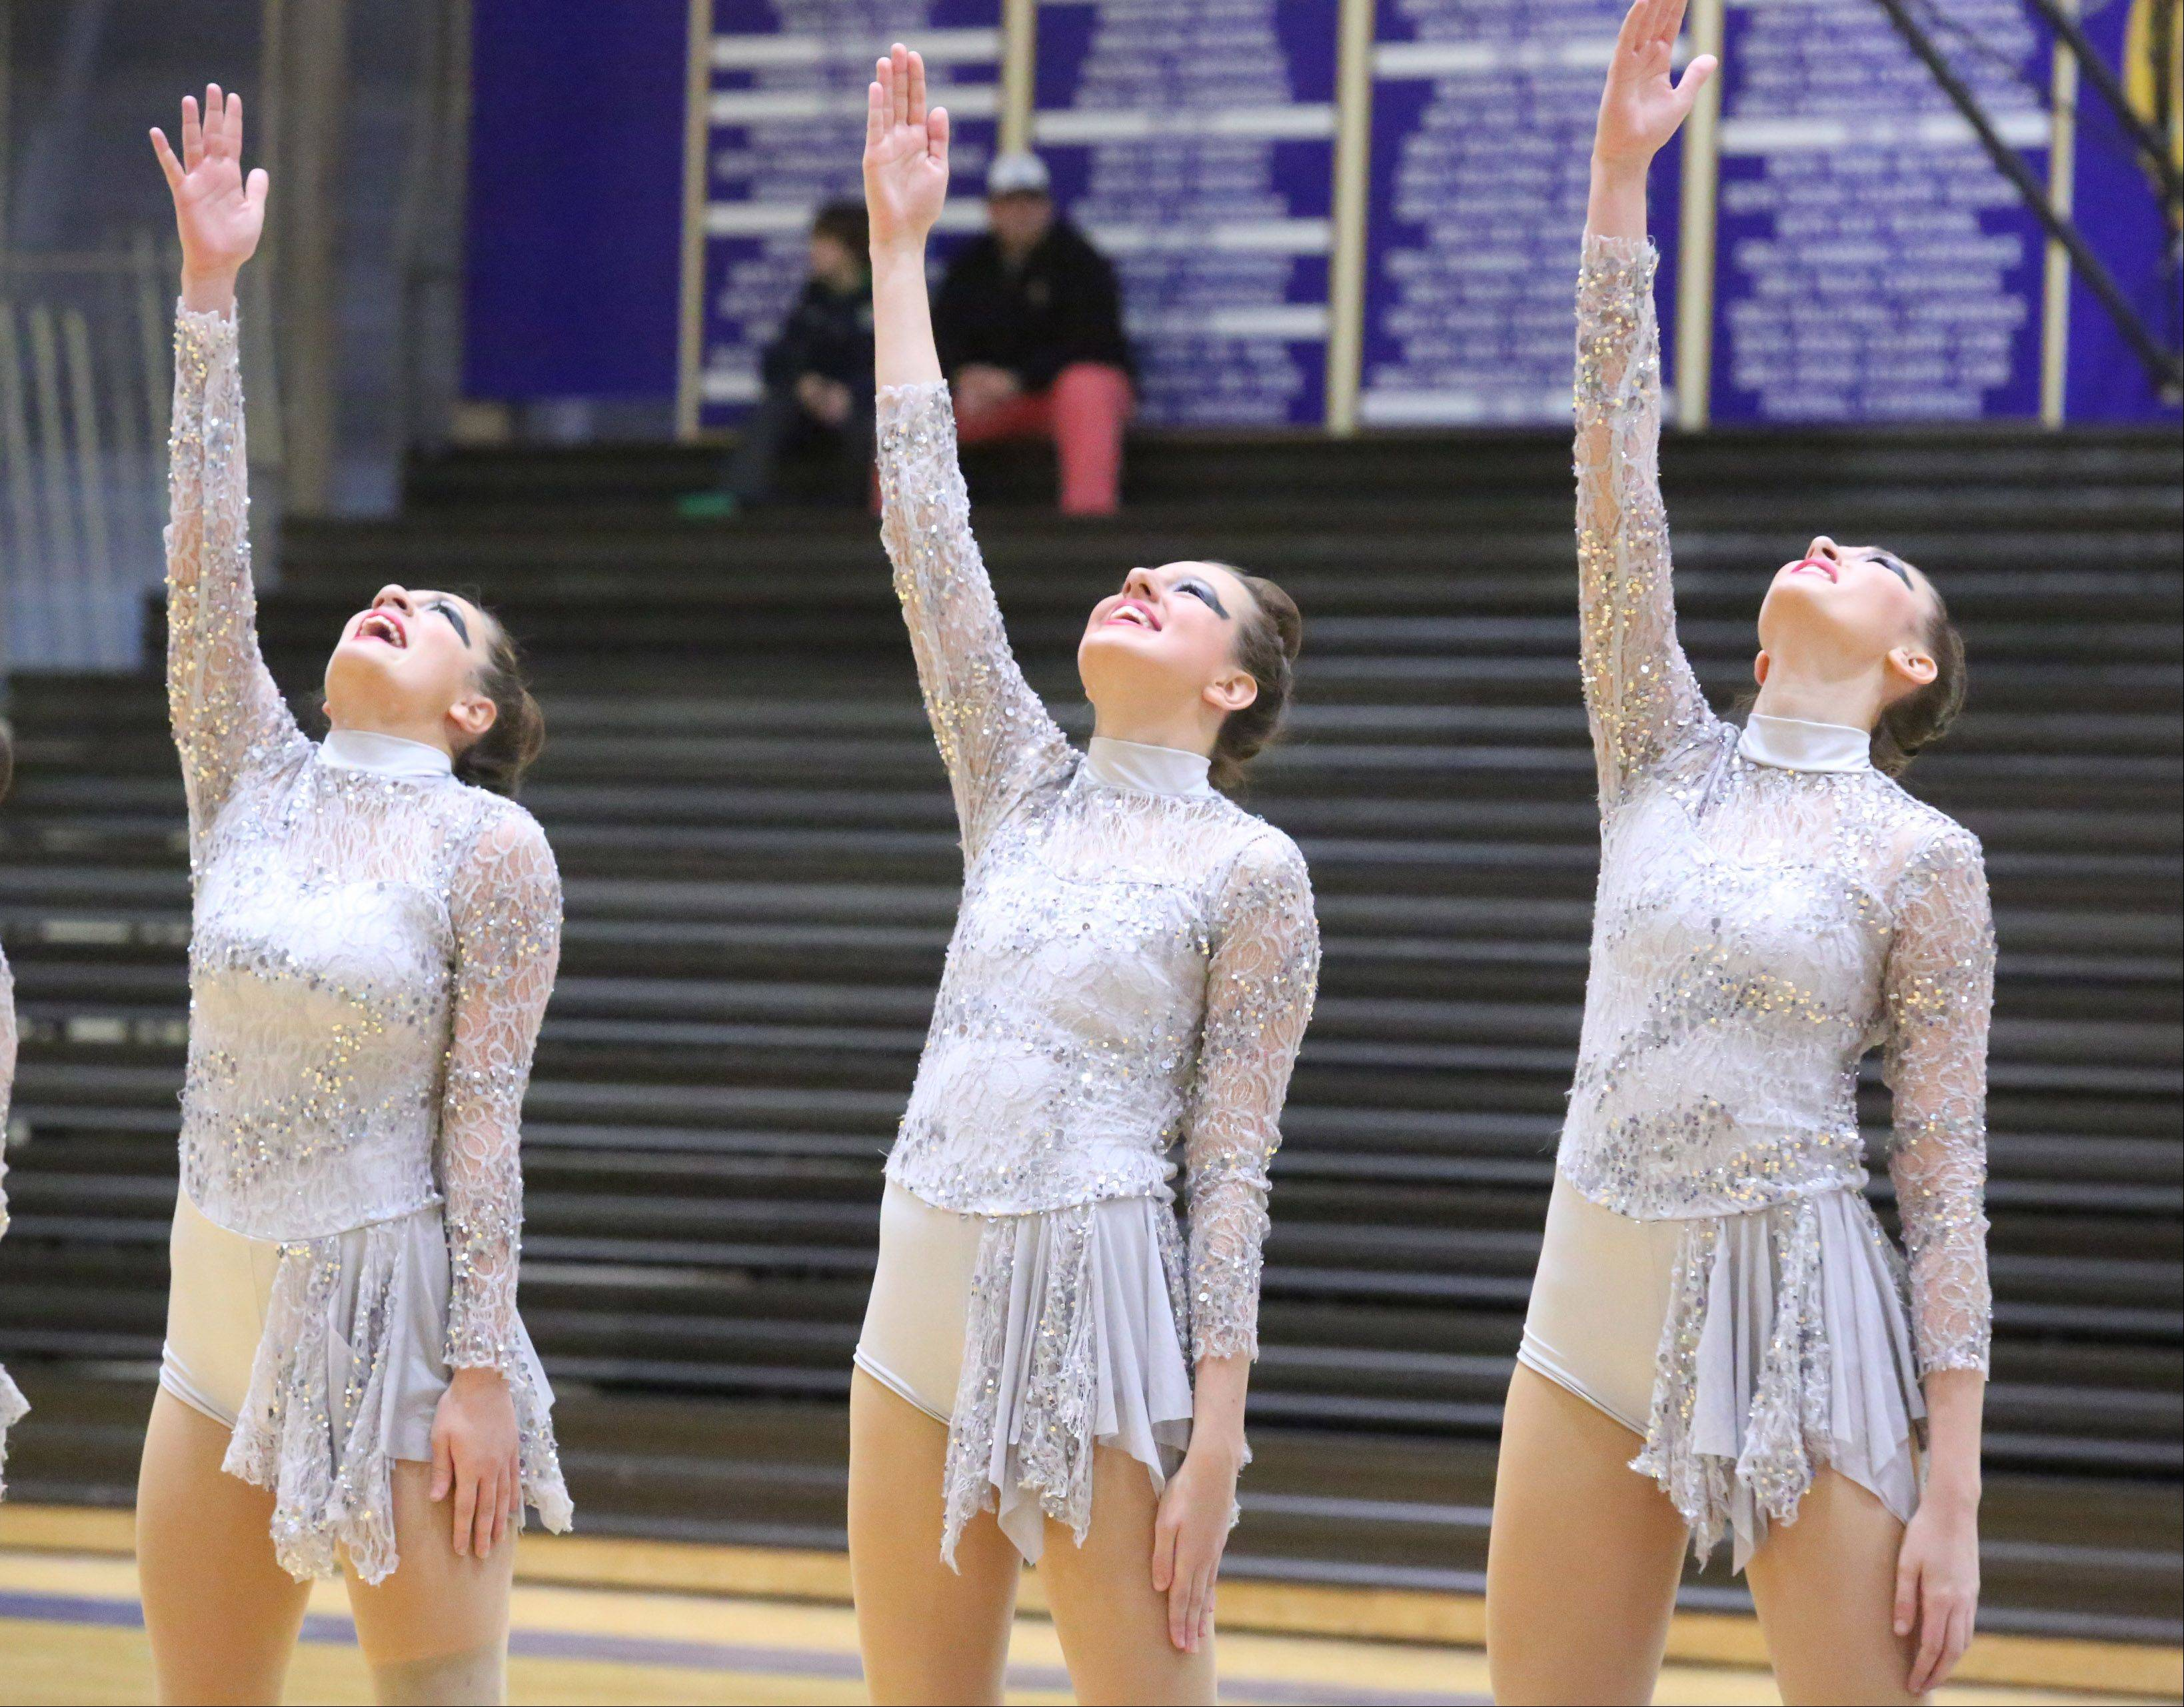 Antioch High School's dance team competes at the IHSA competitive dance sectional at Glenbrook South High School on Saturday in Glenview.